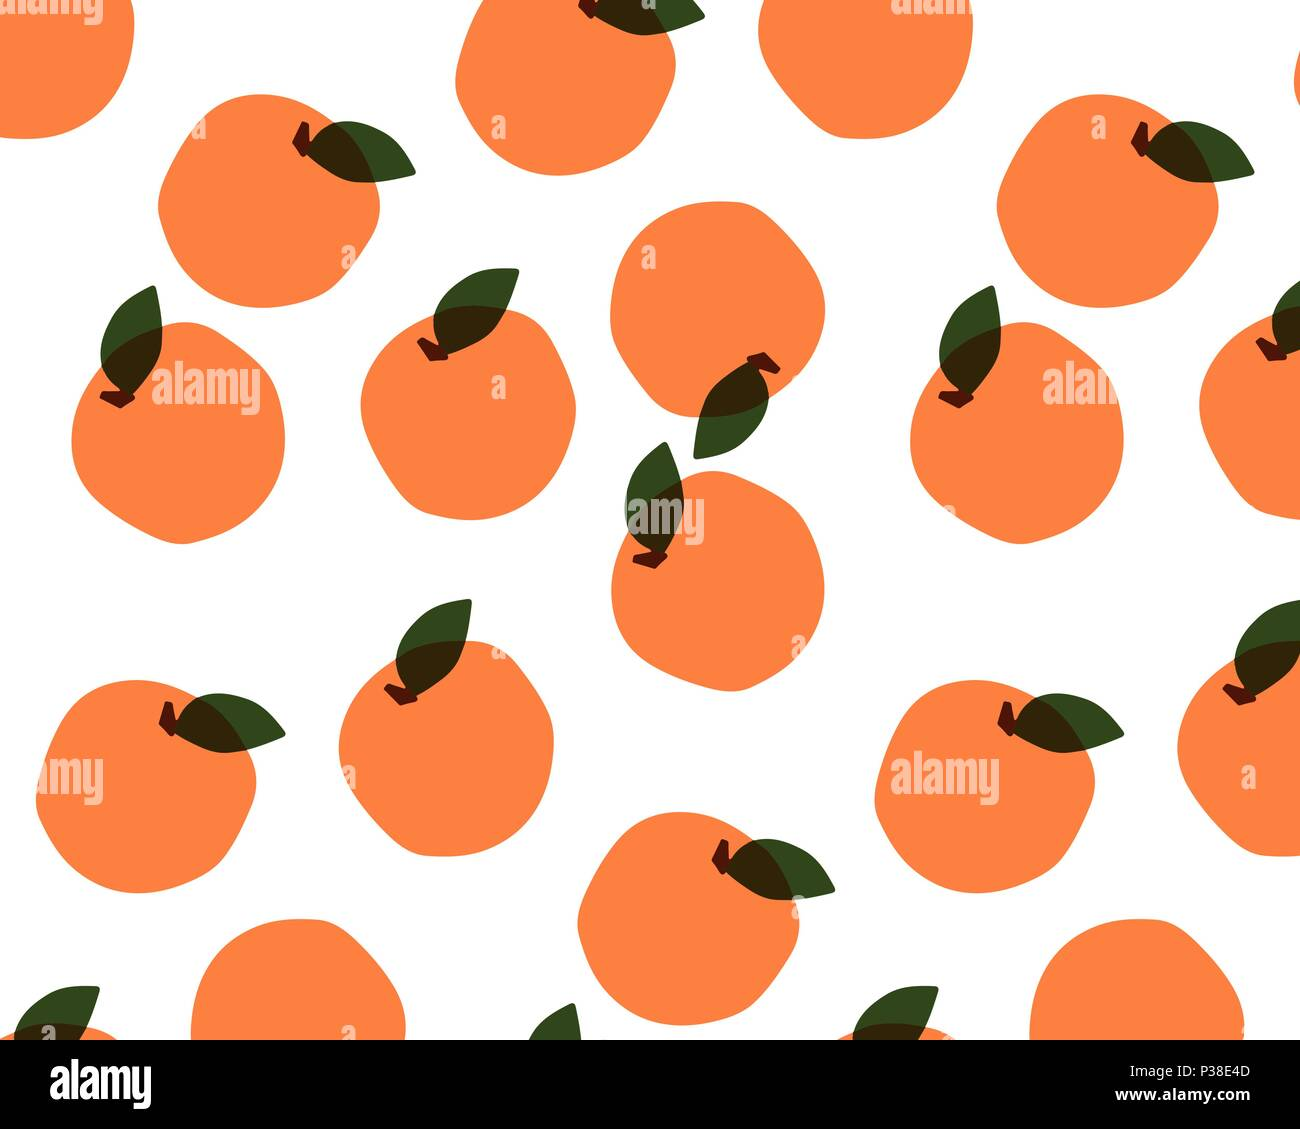 Seamless pattern with fruits on white background. Oranges, peaches, apricots. Vector illustration - Stock Vector